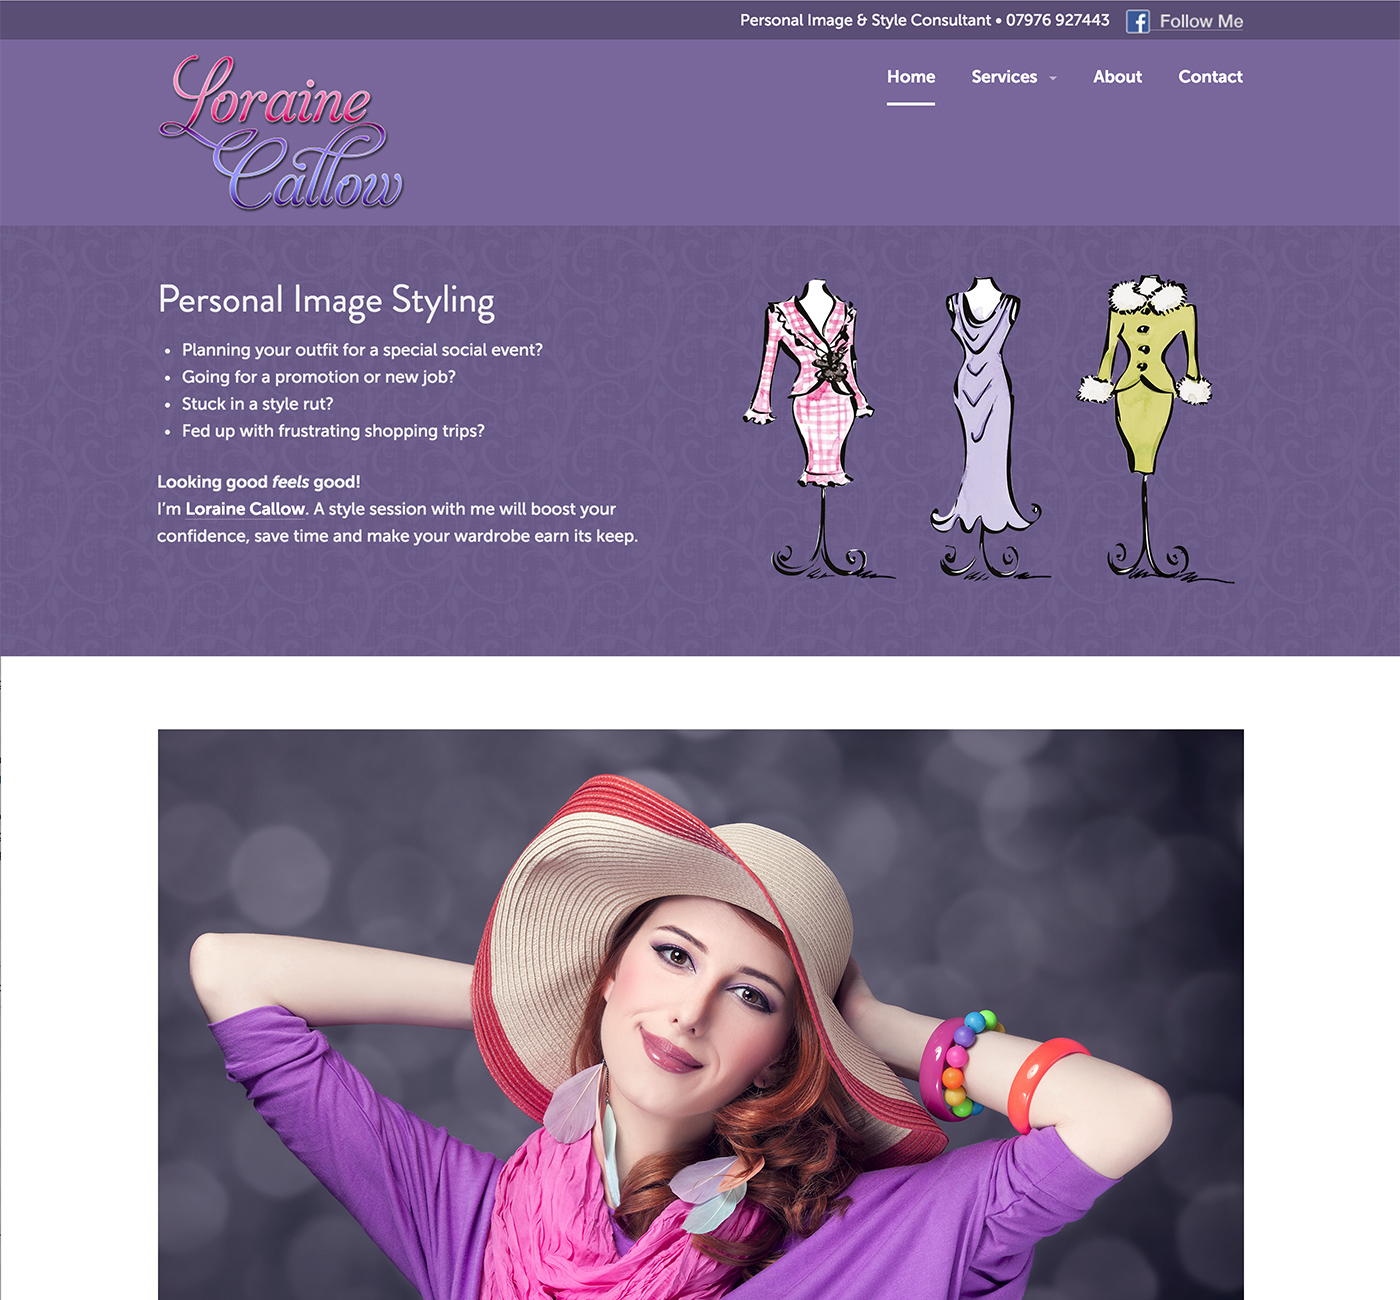 Loraine Callow website design